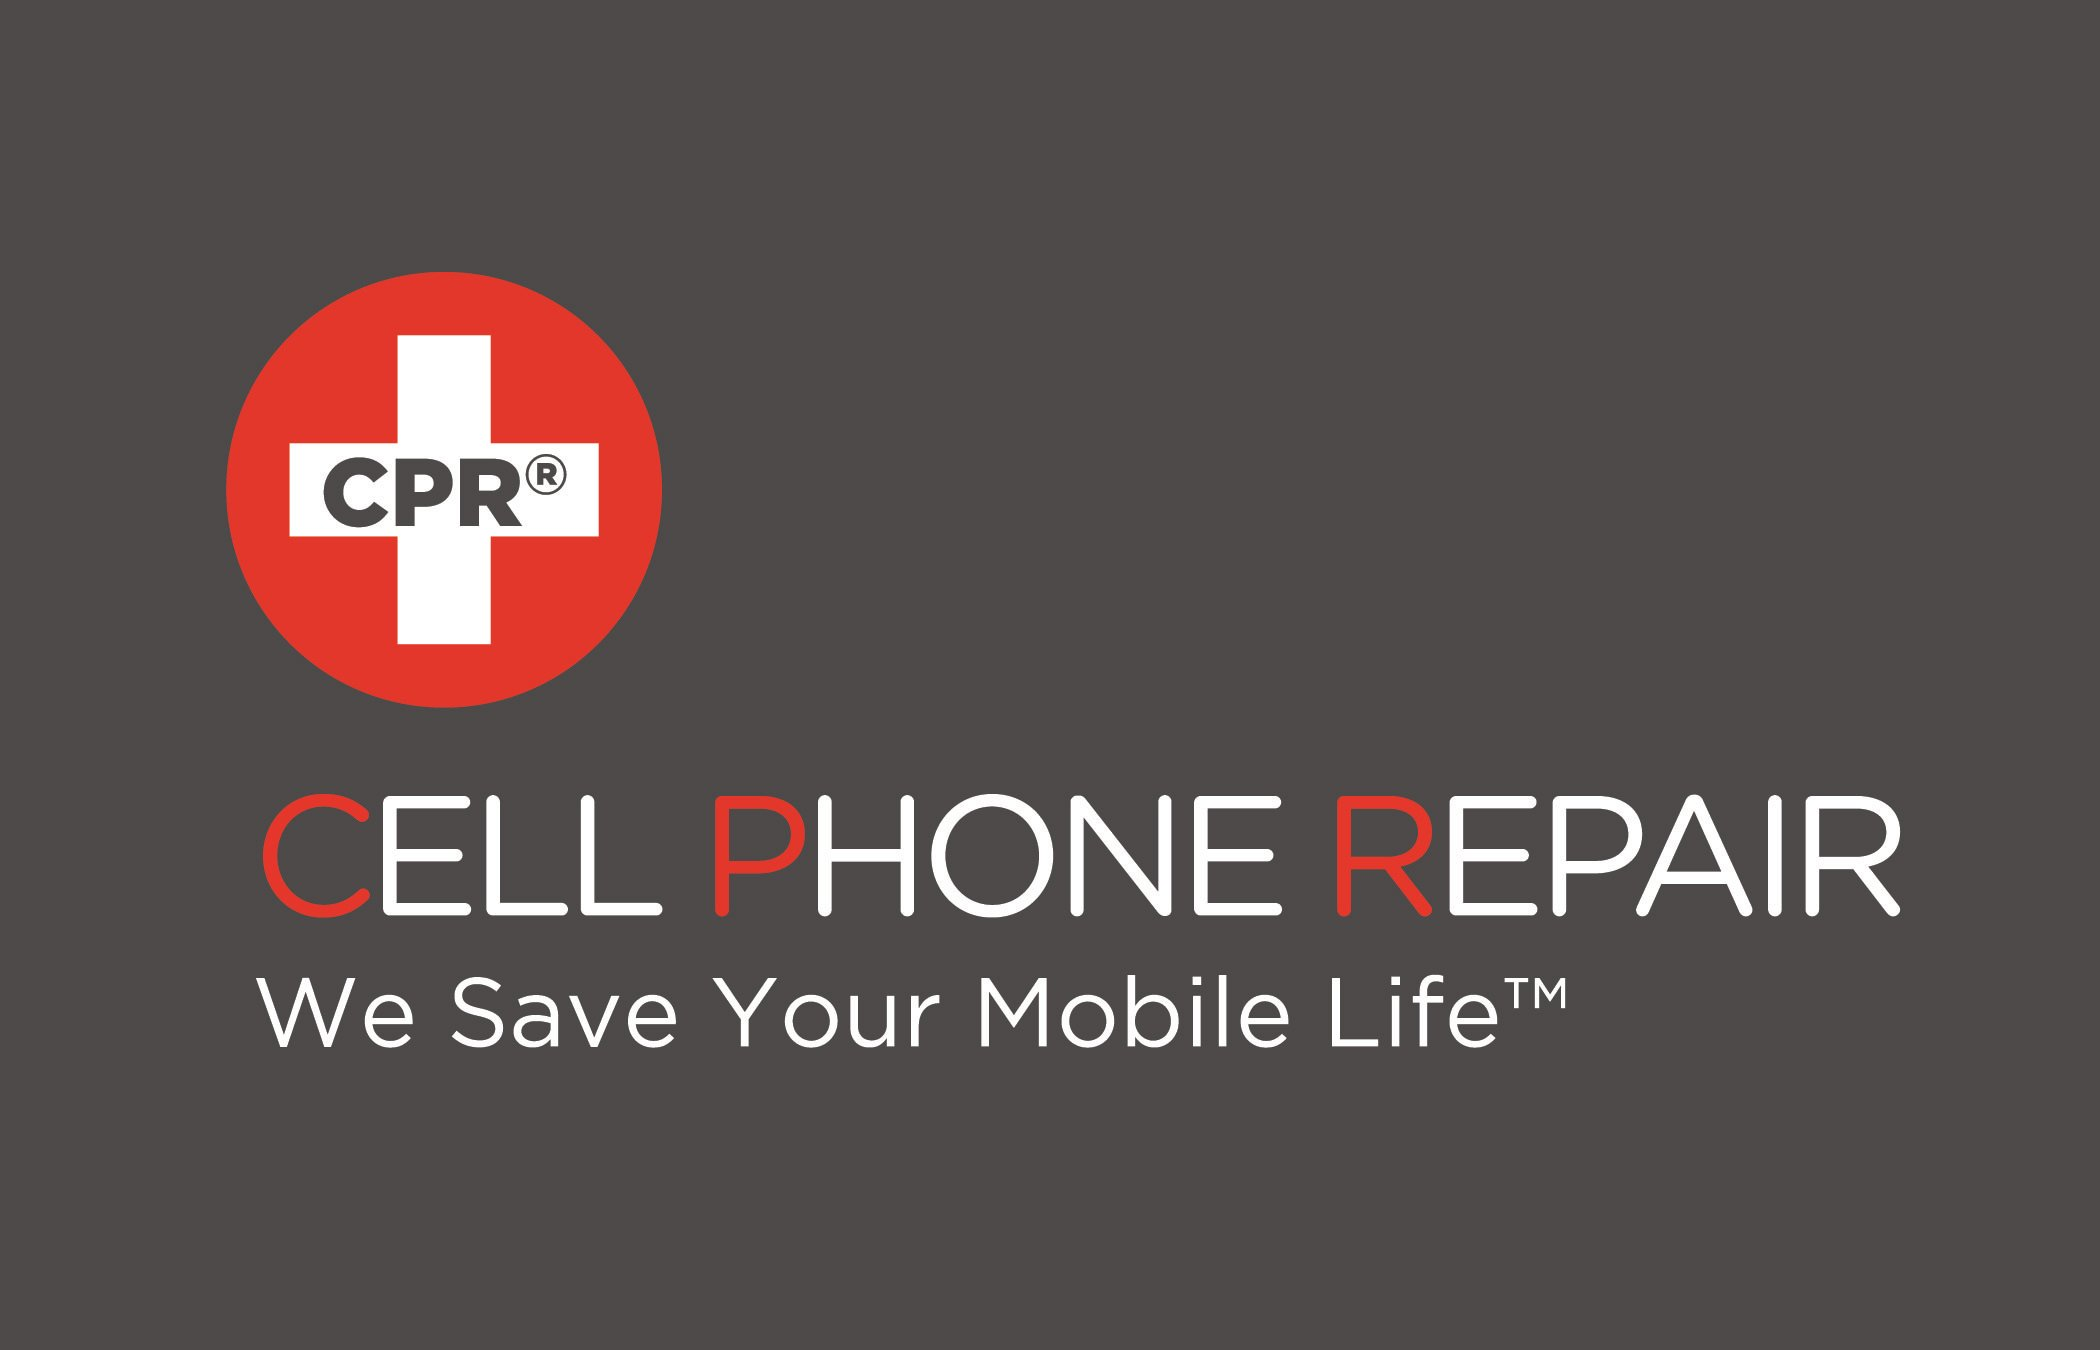 cpr cell phone repair franchise reviews